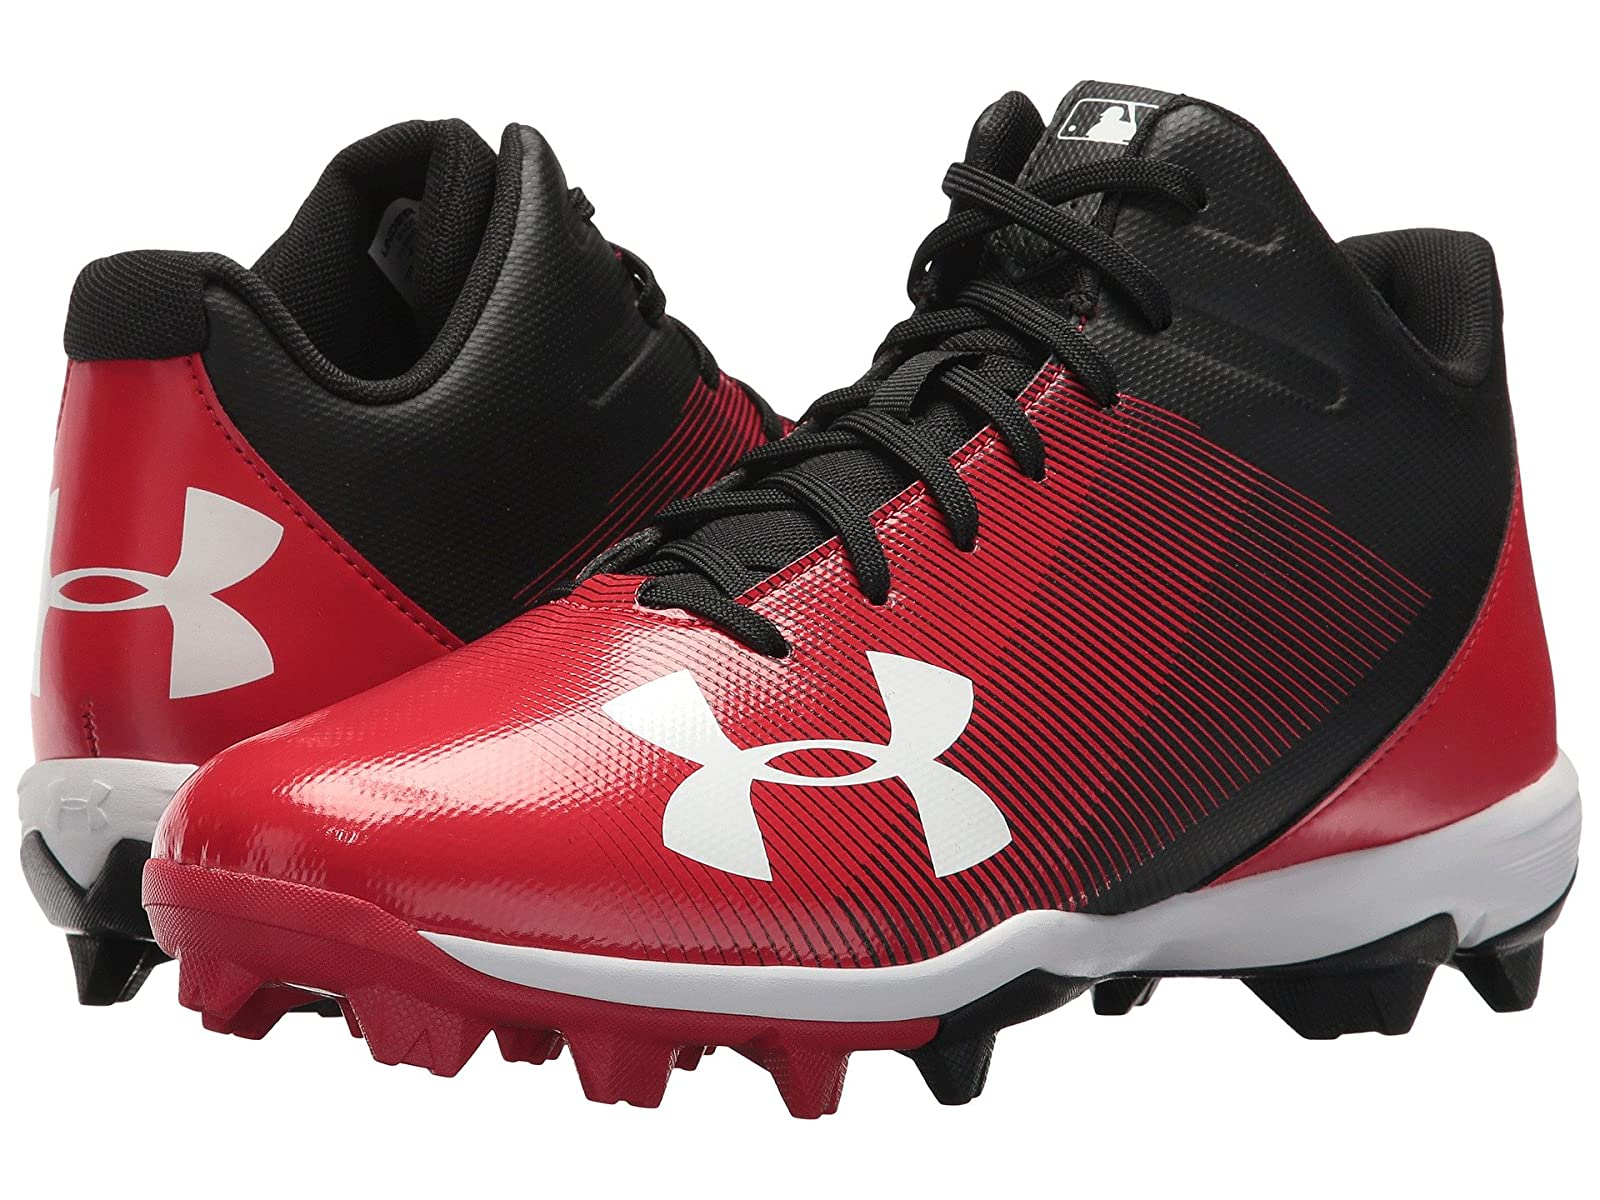 Under Armour UA Leadoff Mid RMAtmospheric grades have affordable shoes